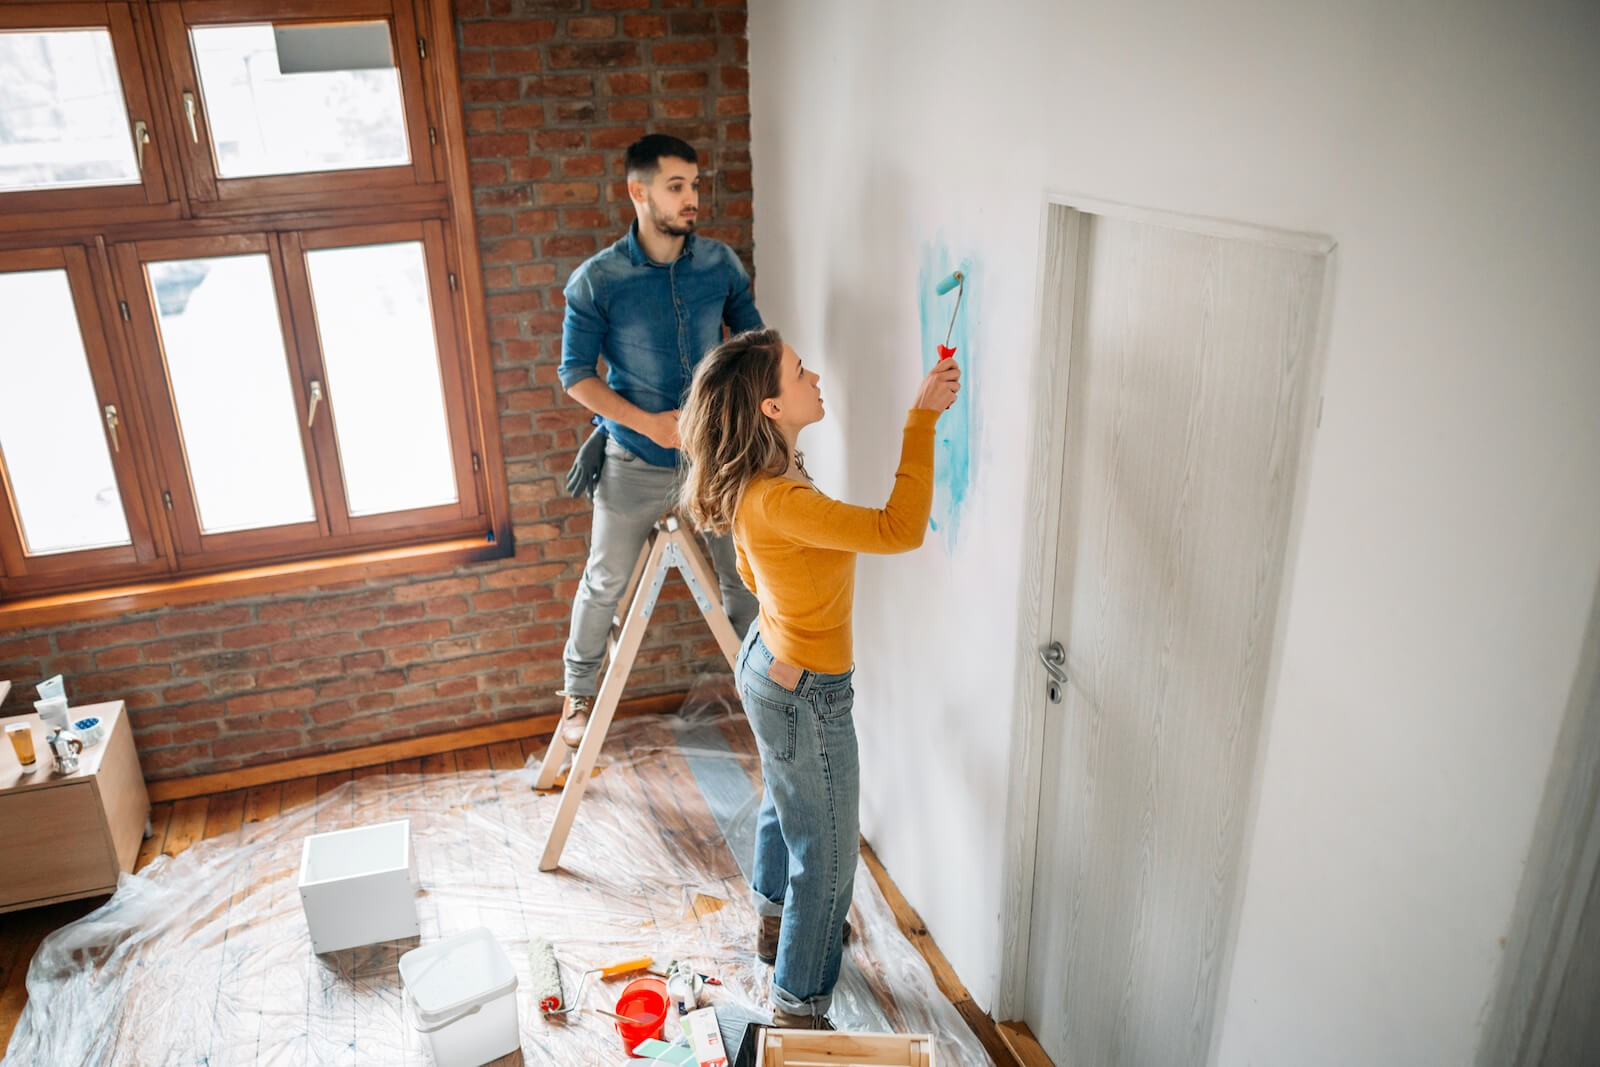 Improve or Move: Should I Renovate My House or Move?